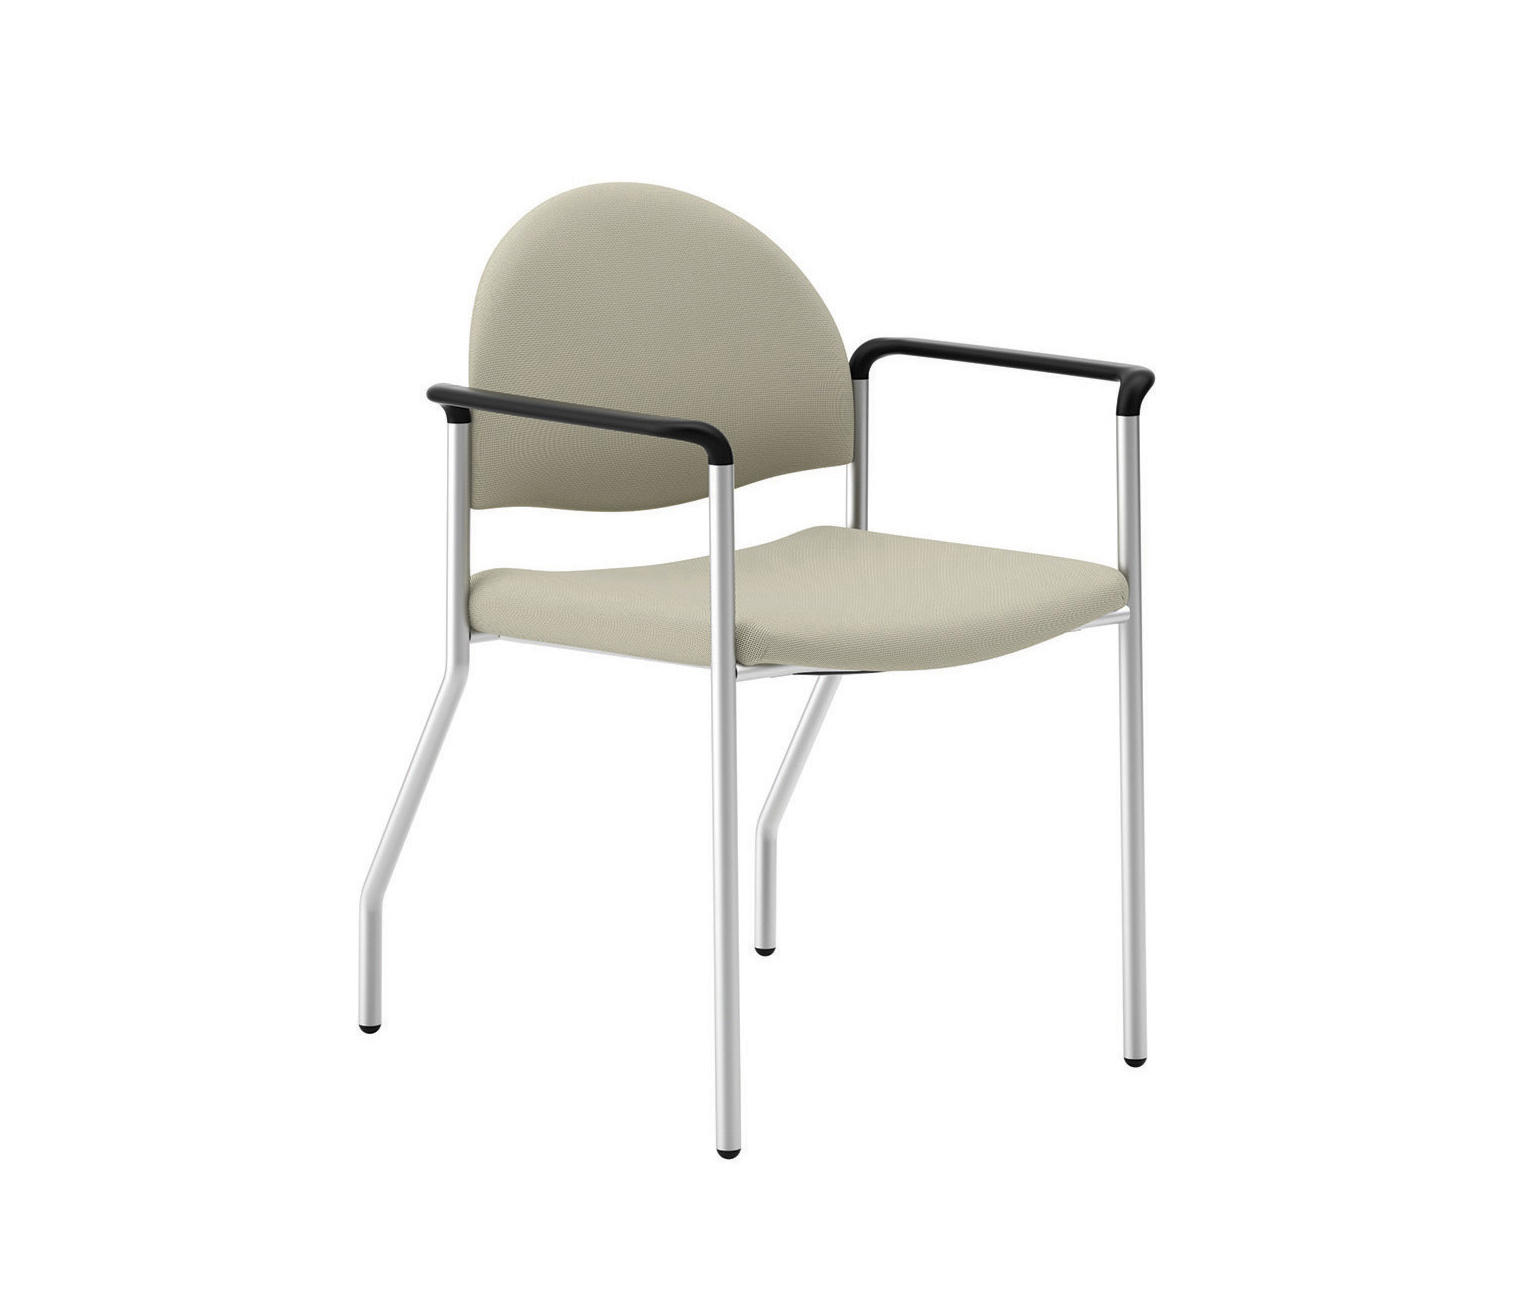 Tag Stacking Chair Arc Back Upholstered Back/Wall Saver Legs By National  Office Furniture |